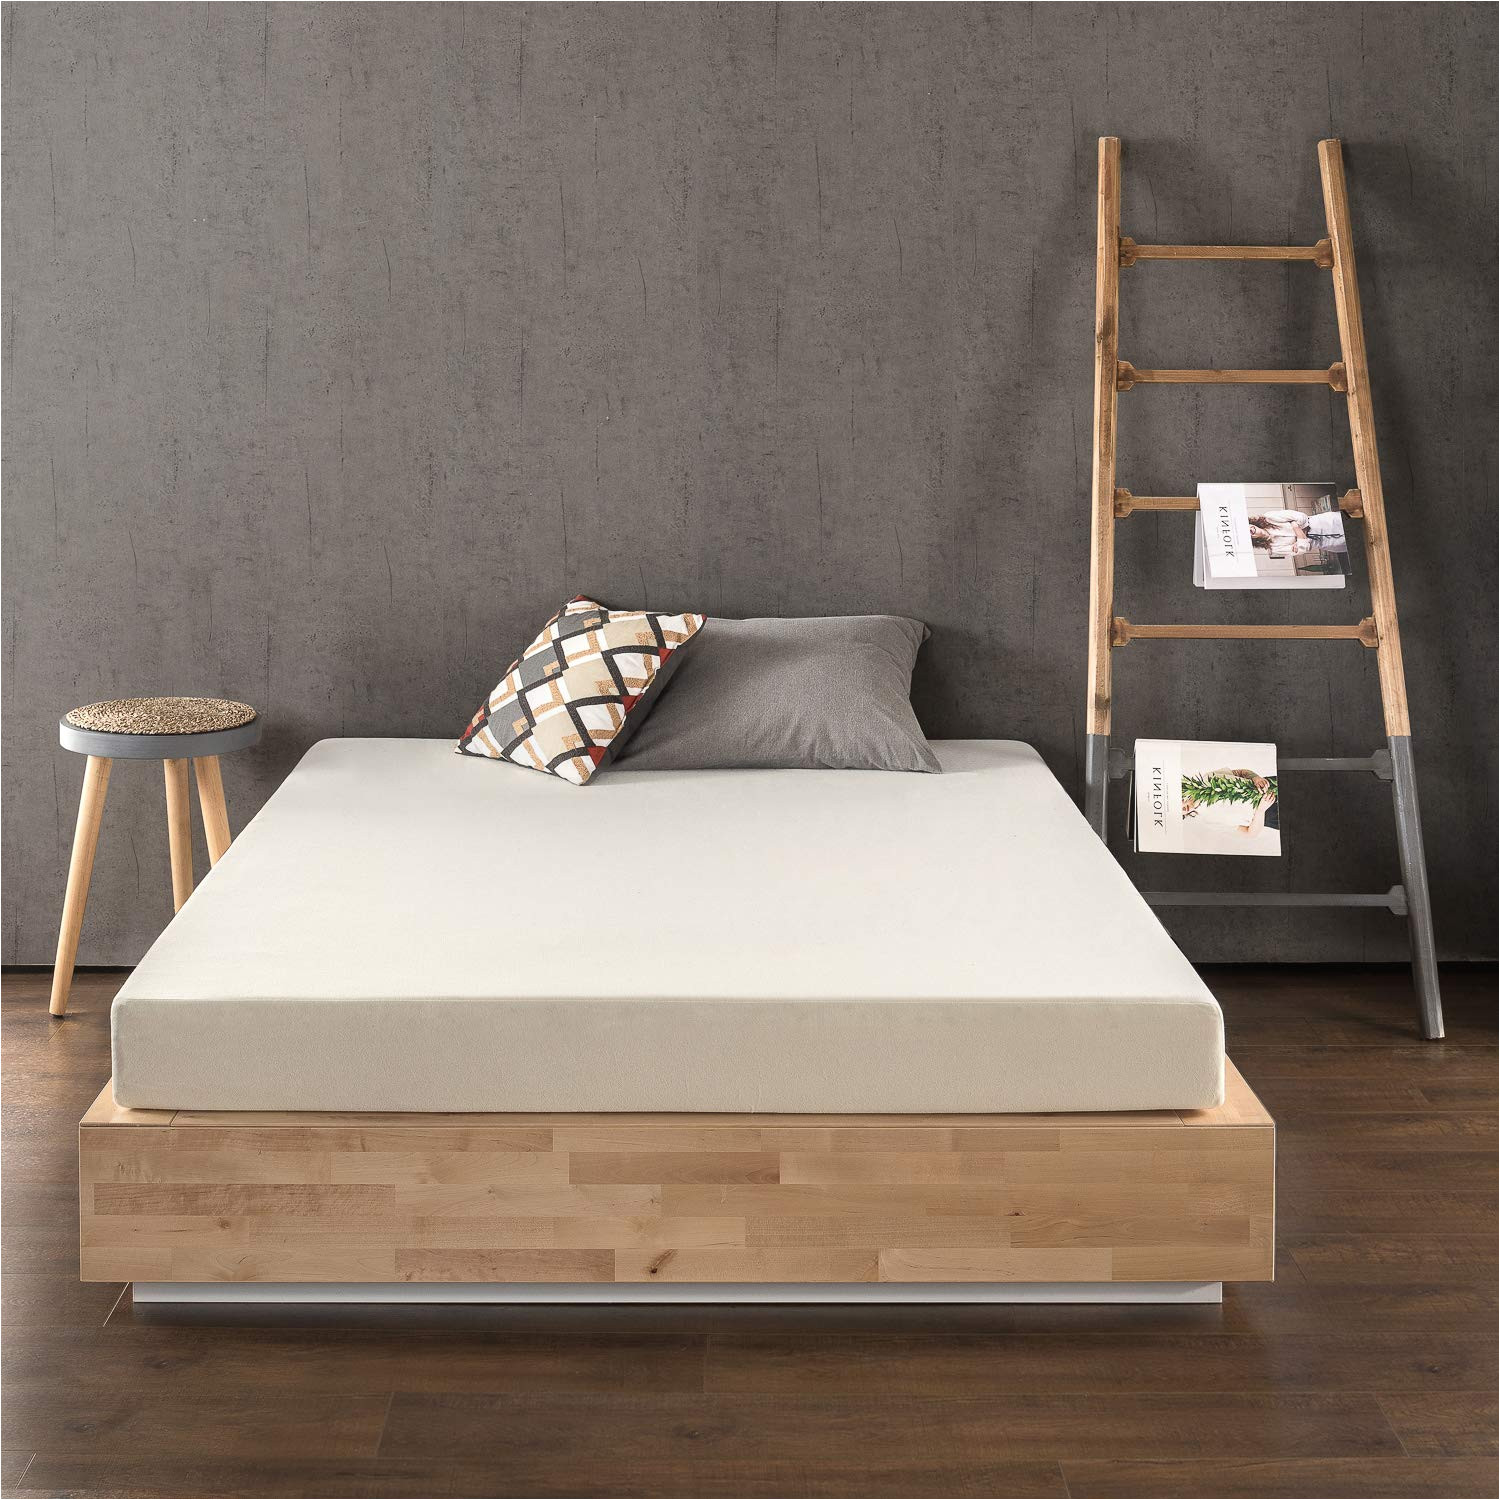 how much does a queen size memory foam mattress weigh adinaporter. Black Bedroom Furniture Sets. Home Design Ideas